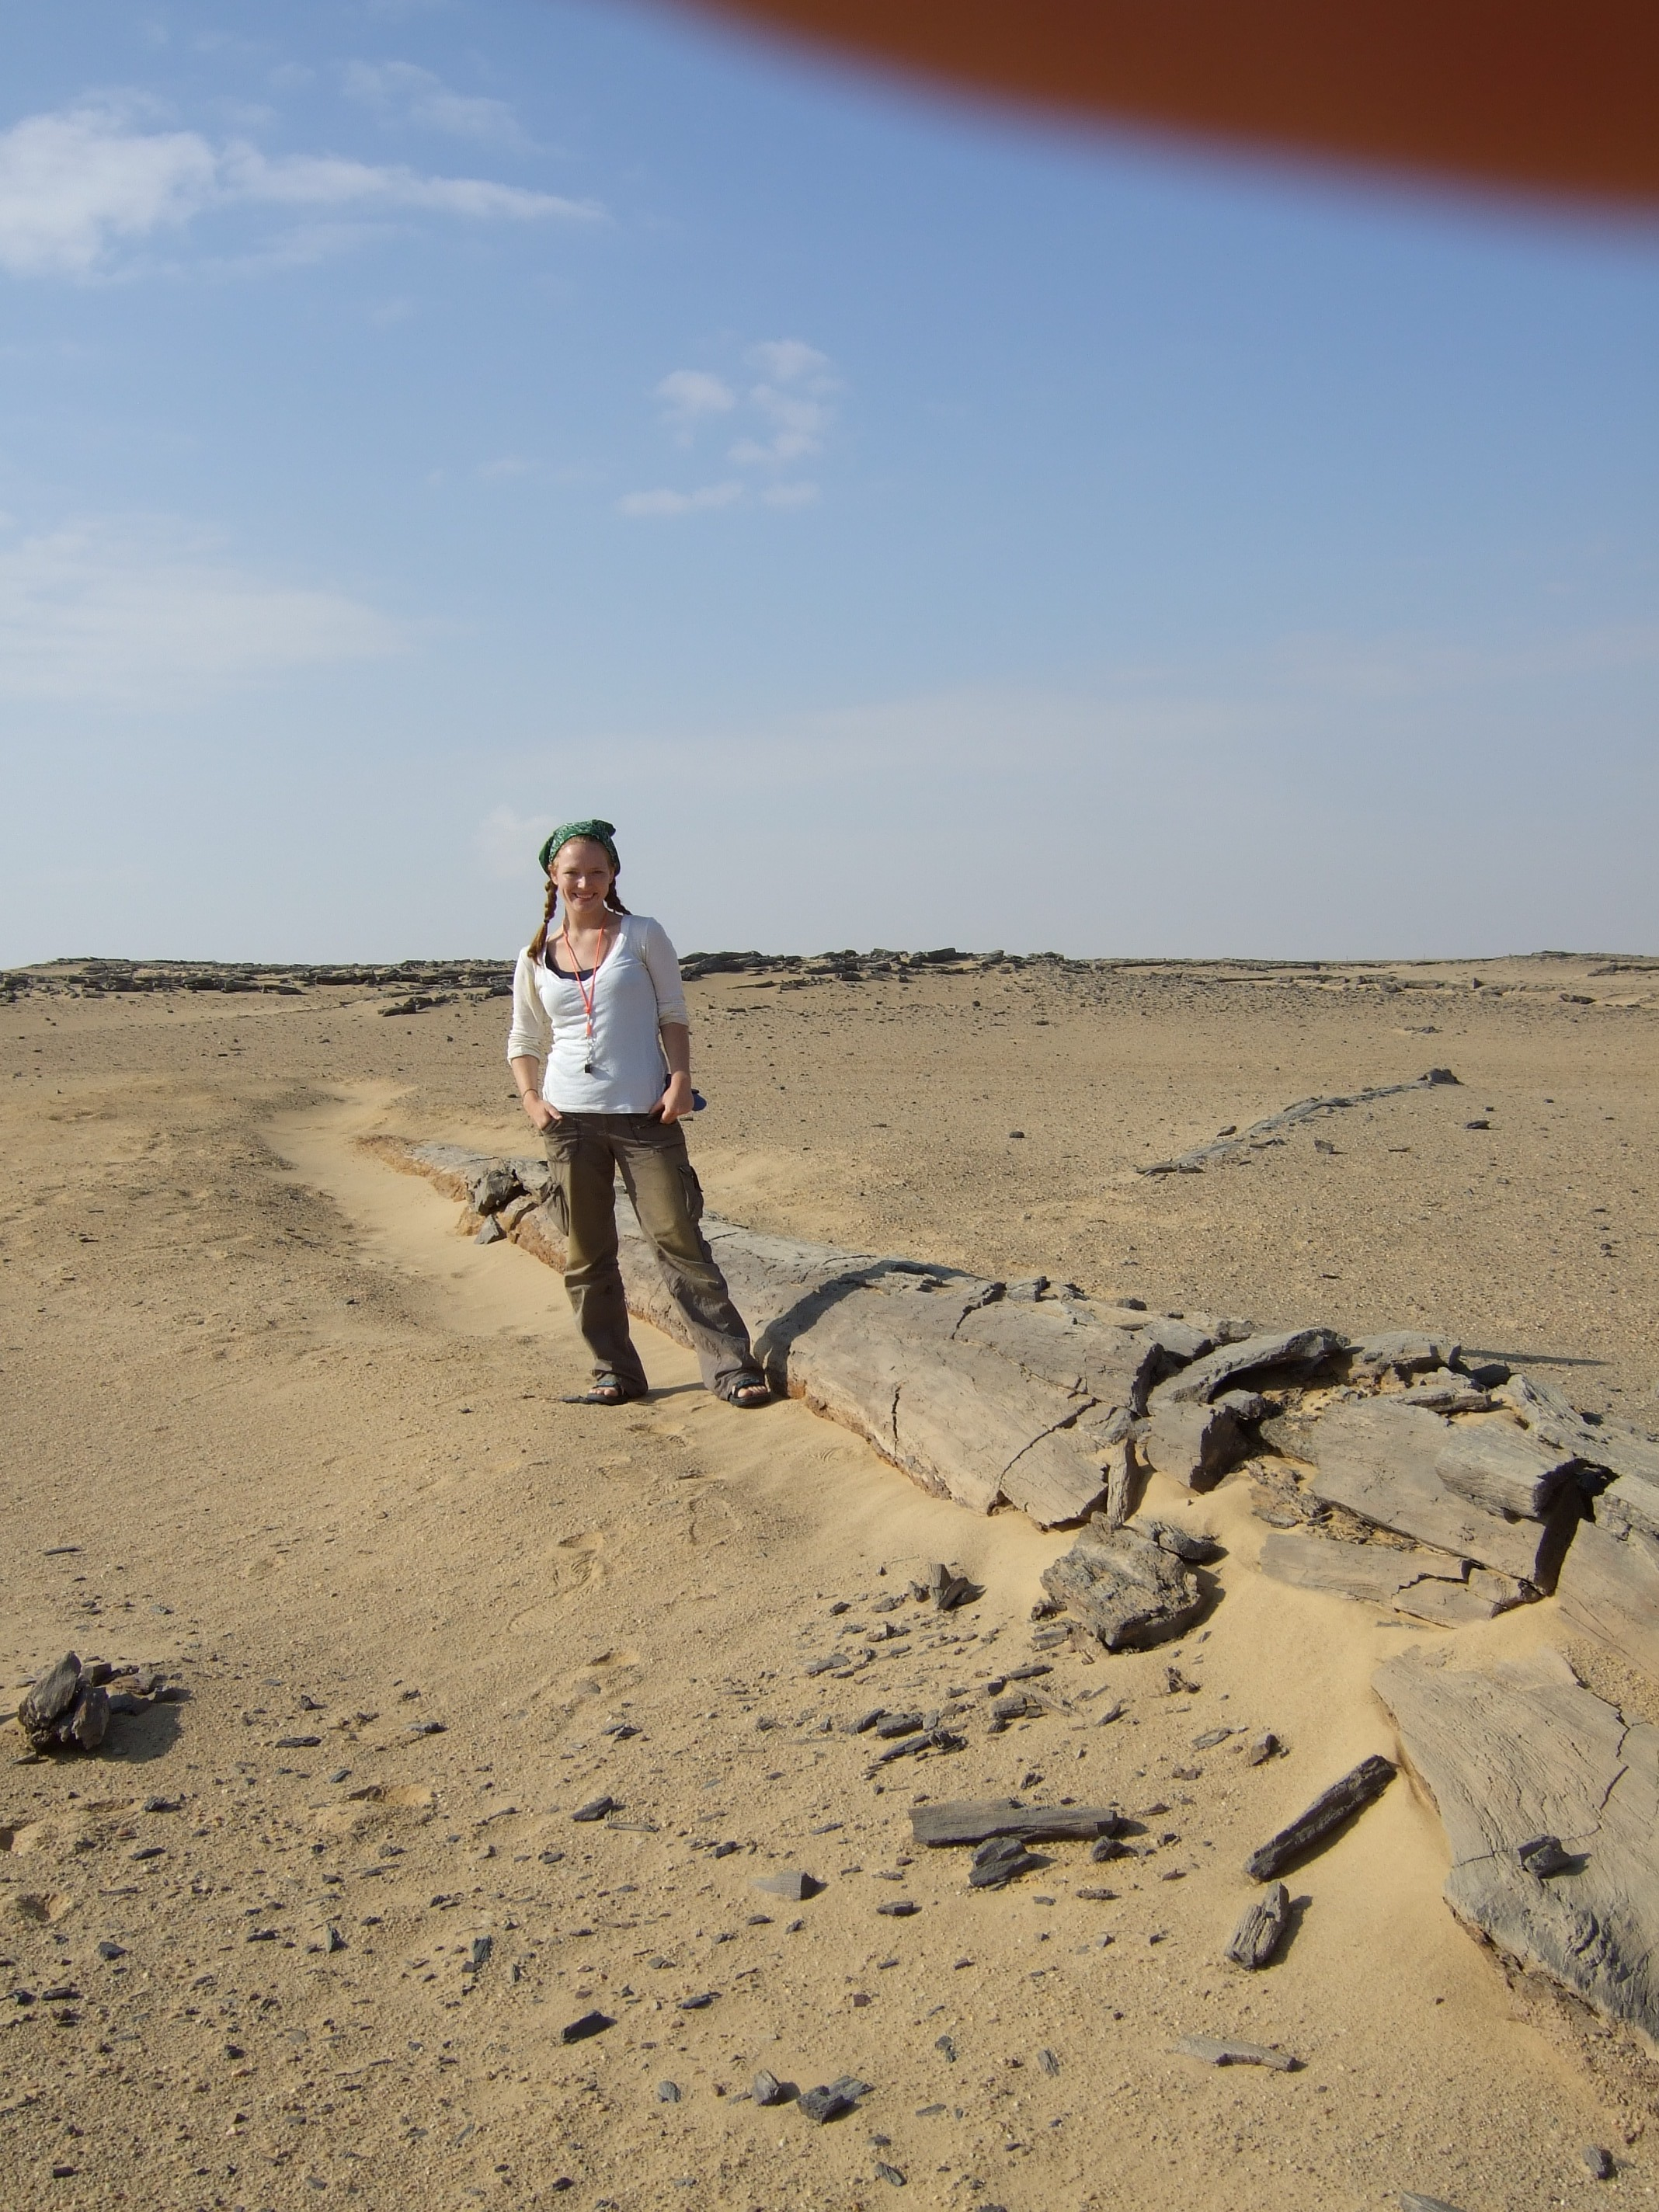 Standing near a petrified tree in the Fayum Depression, Egypt.